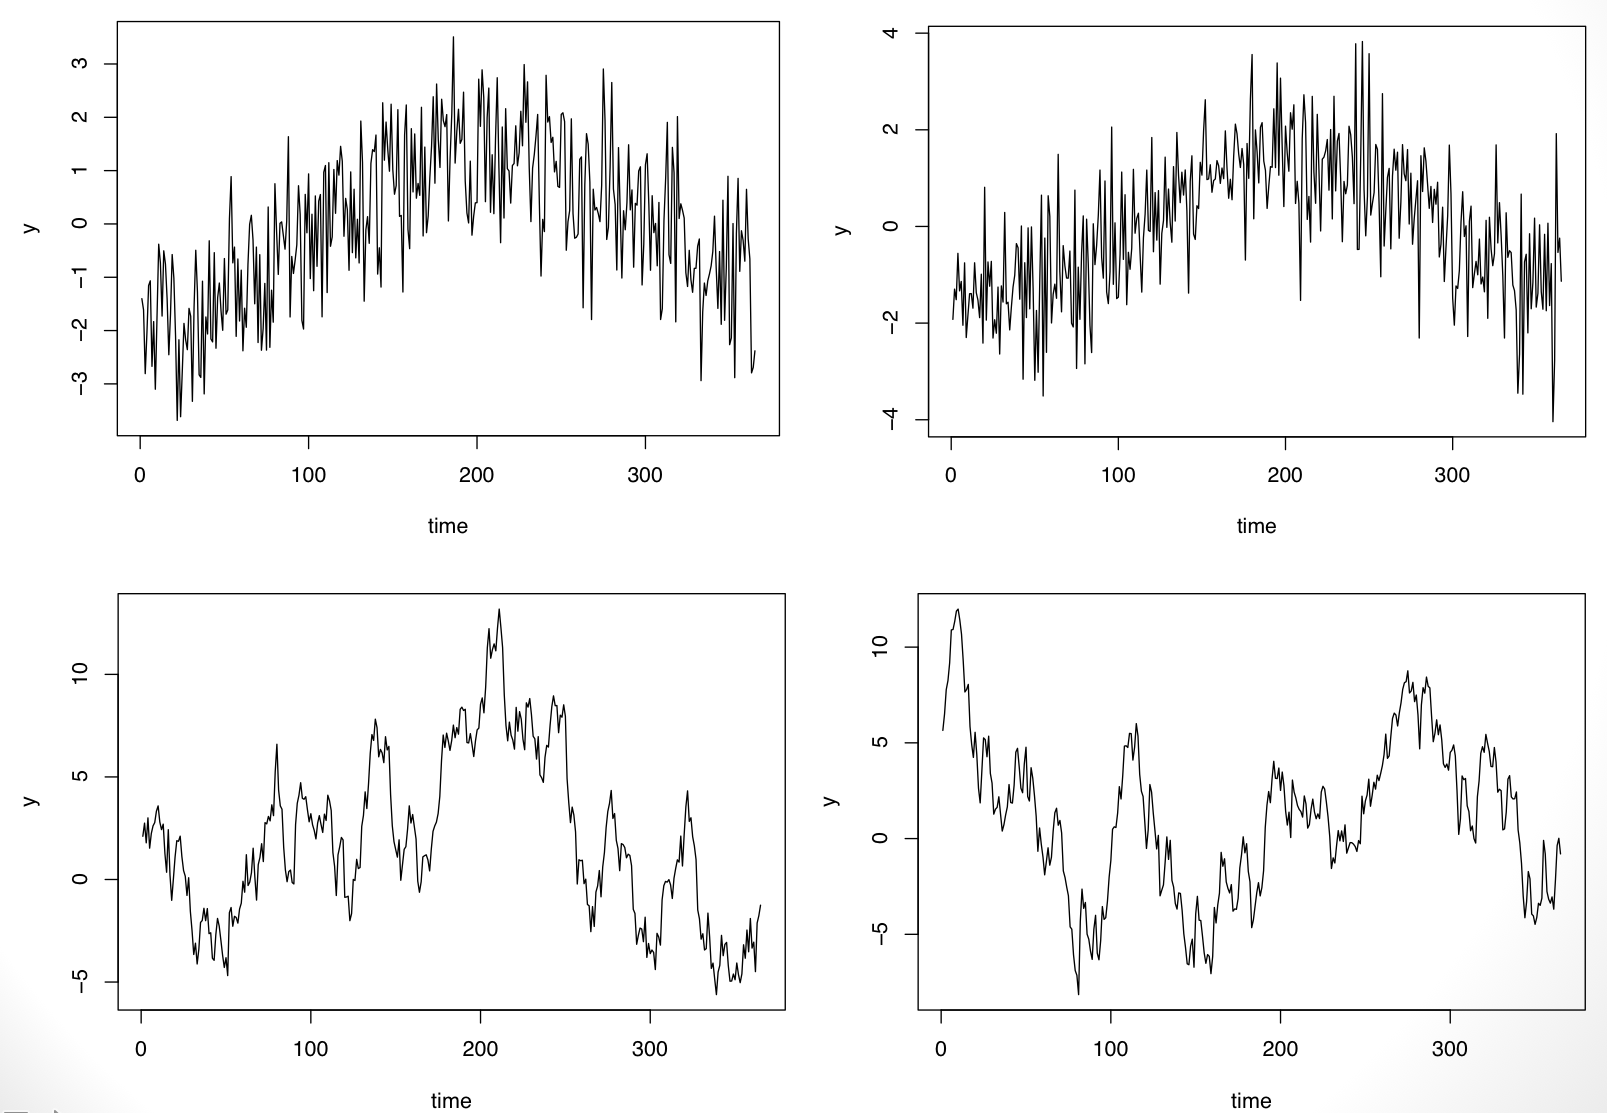 Fixed and random time series patterns